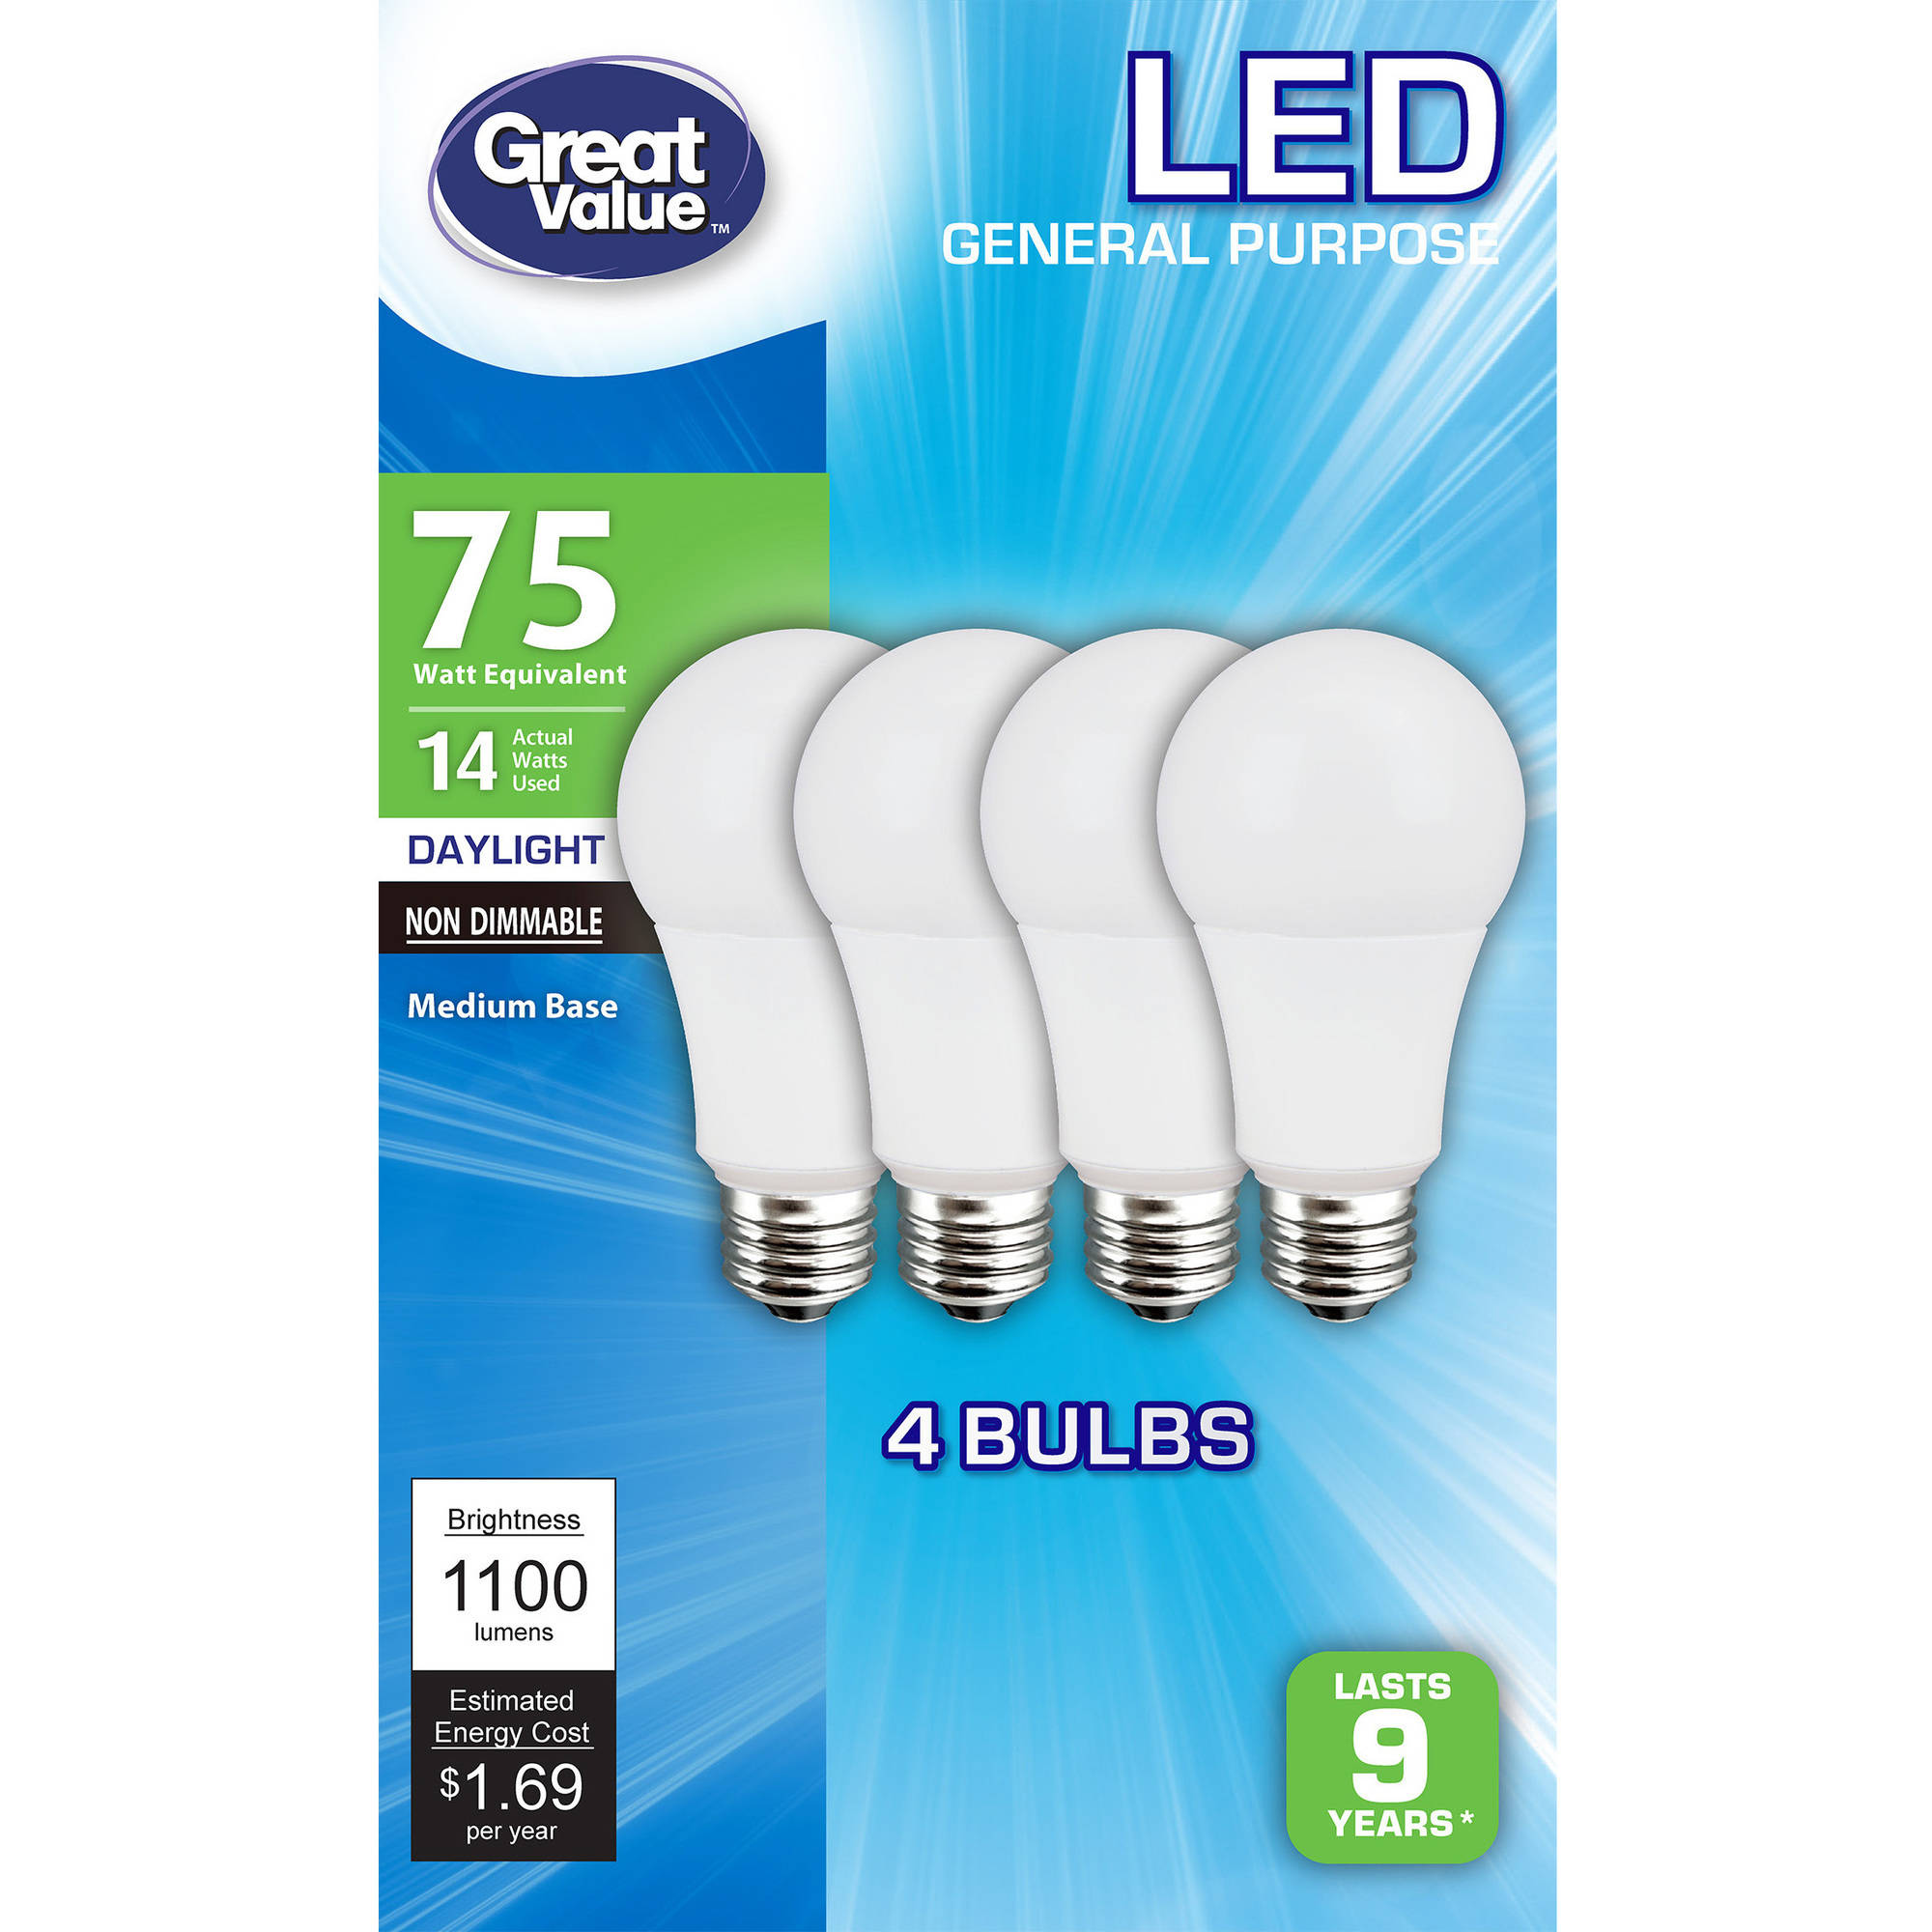 Great Value LED Light Bulbs 14W (75W Equivalent), Daylight, 4-Pack